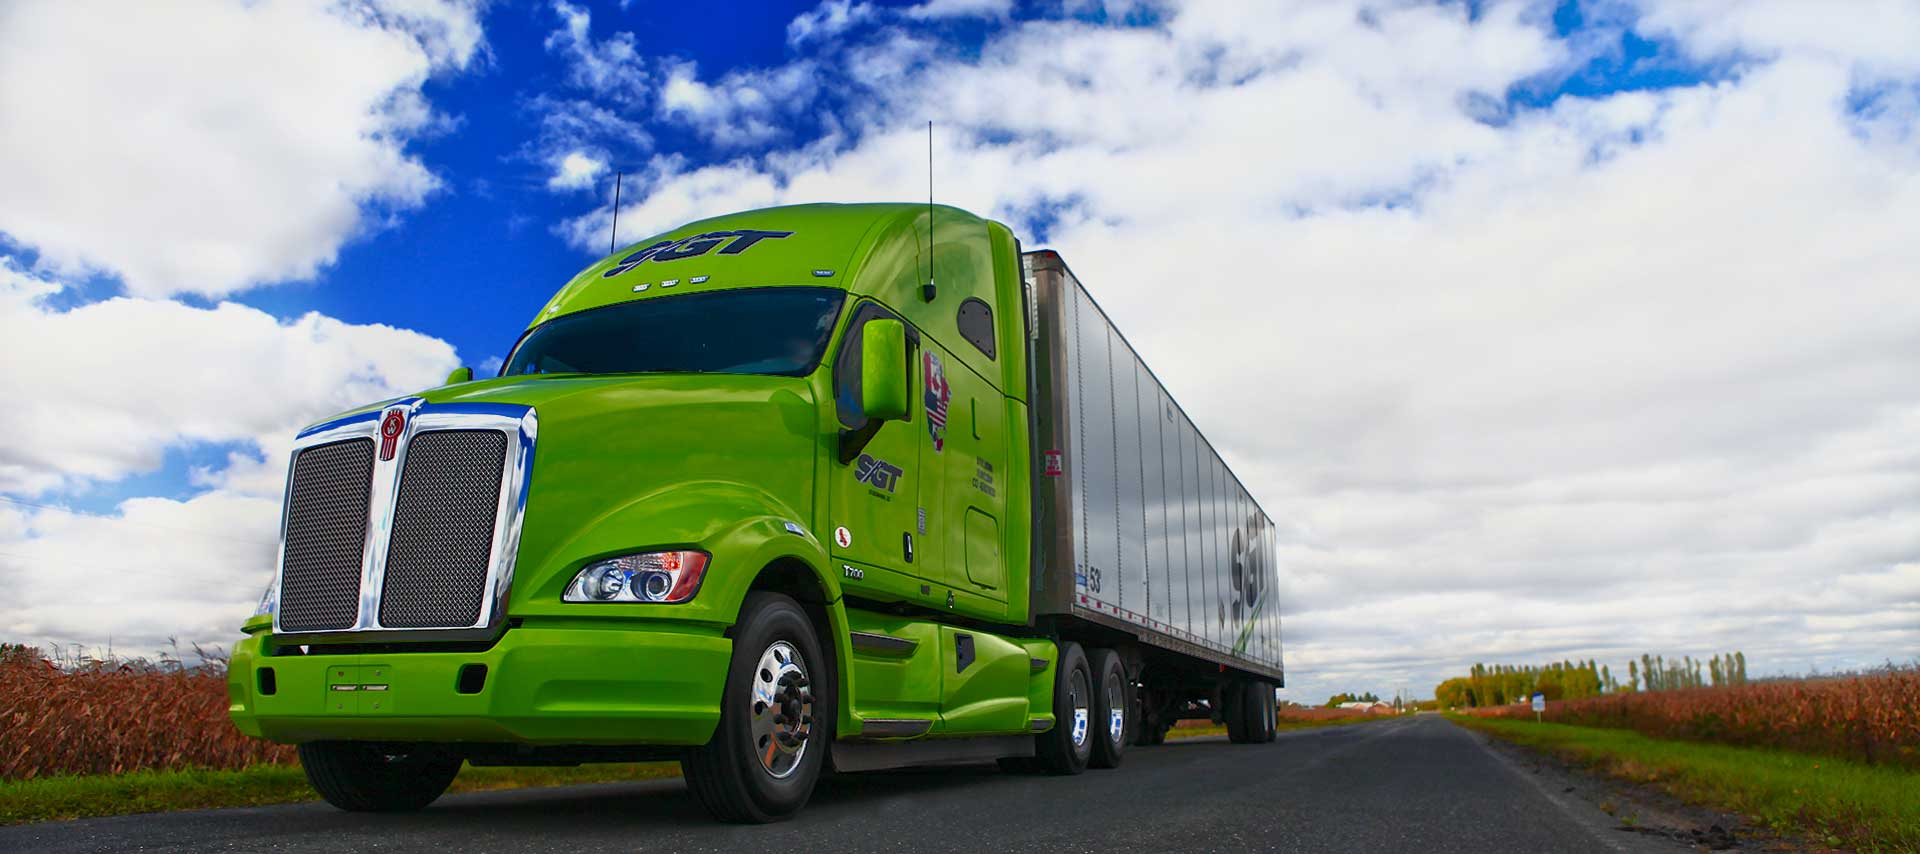 SGT, trucking transportation, logistic and warehousing